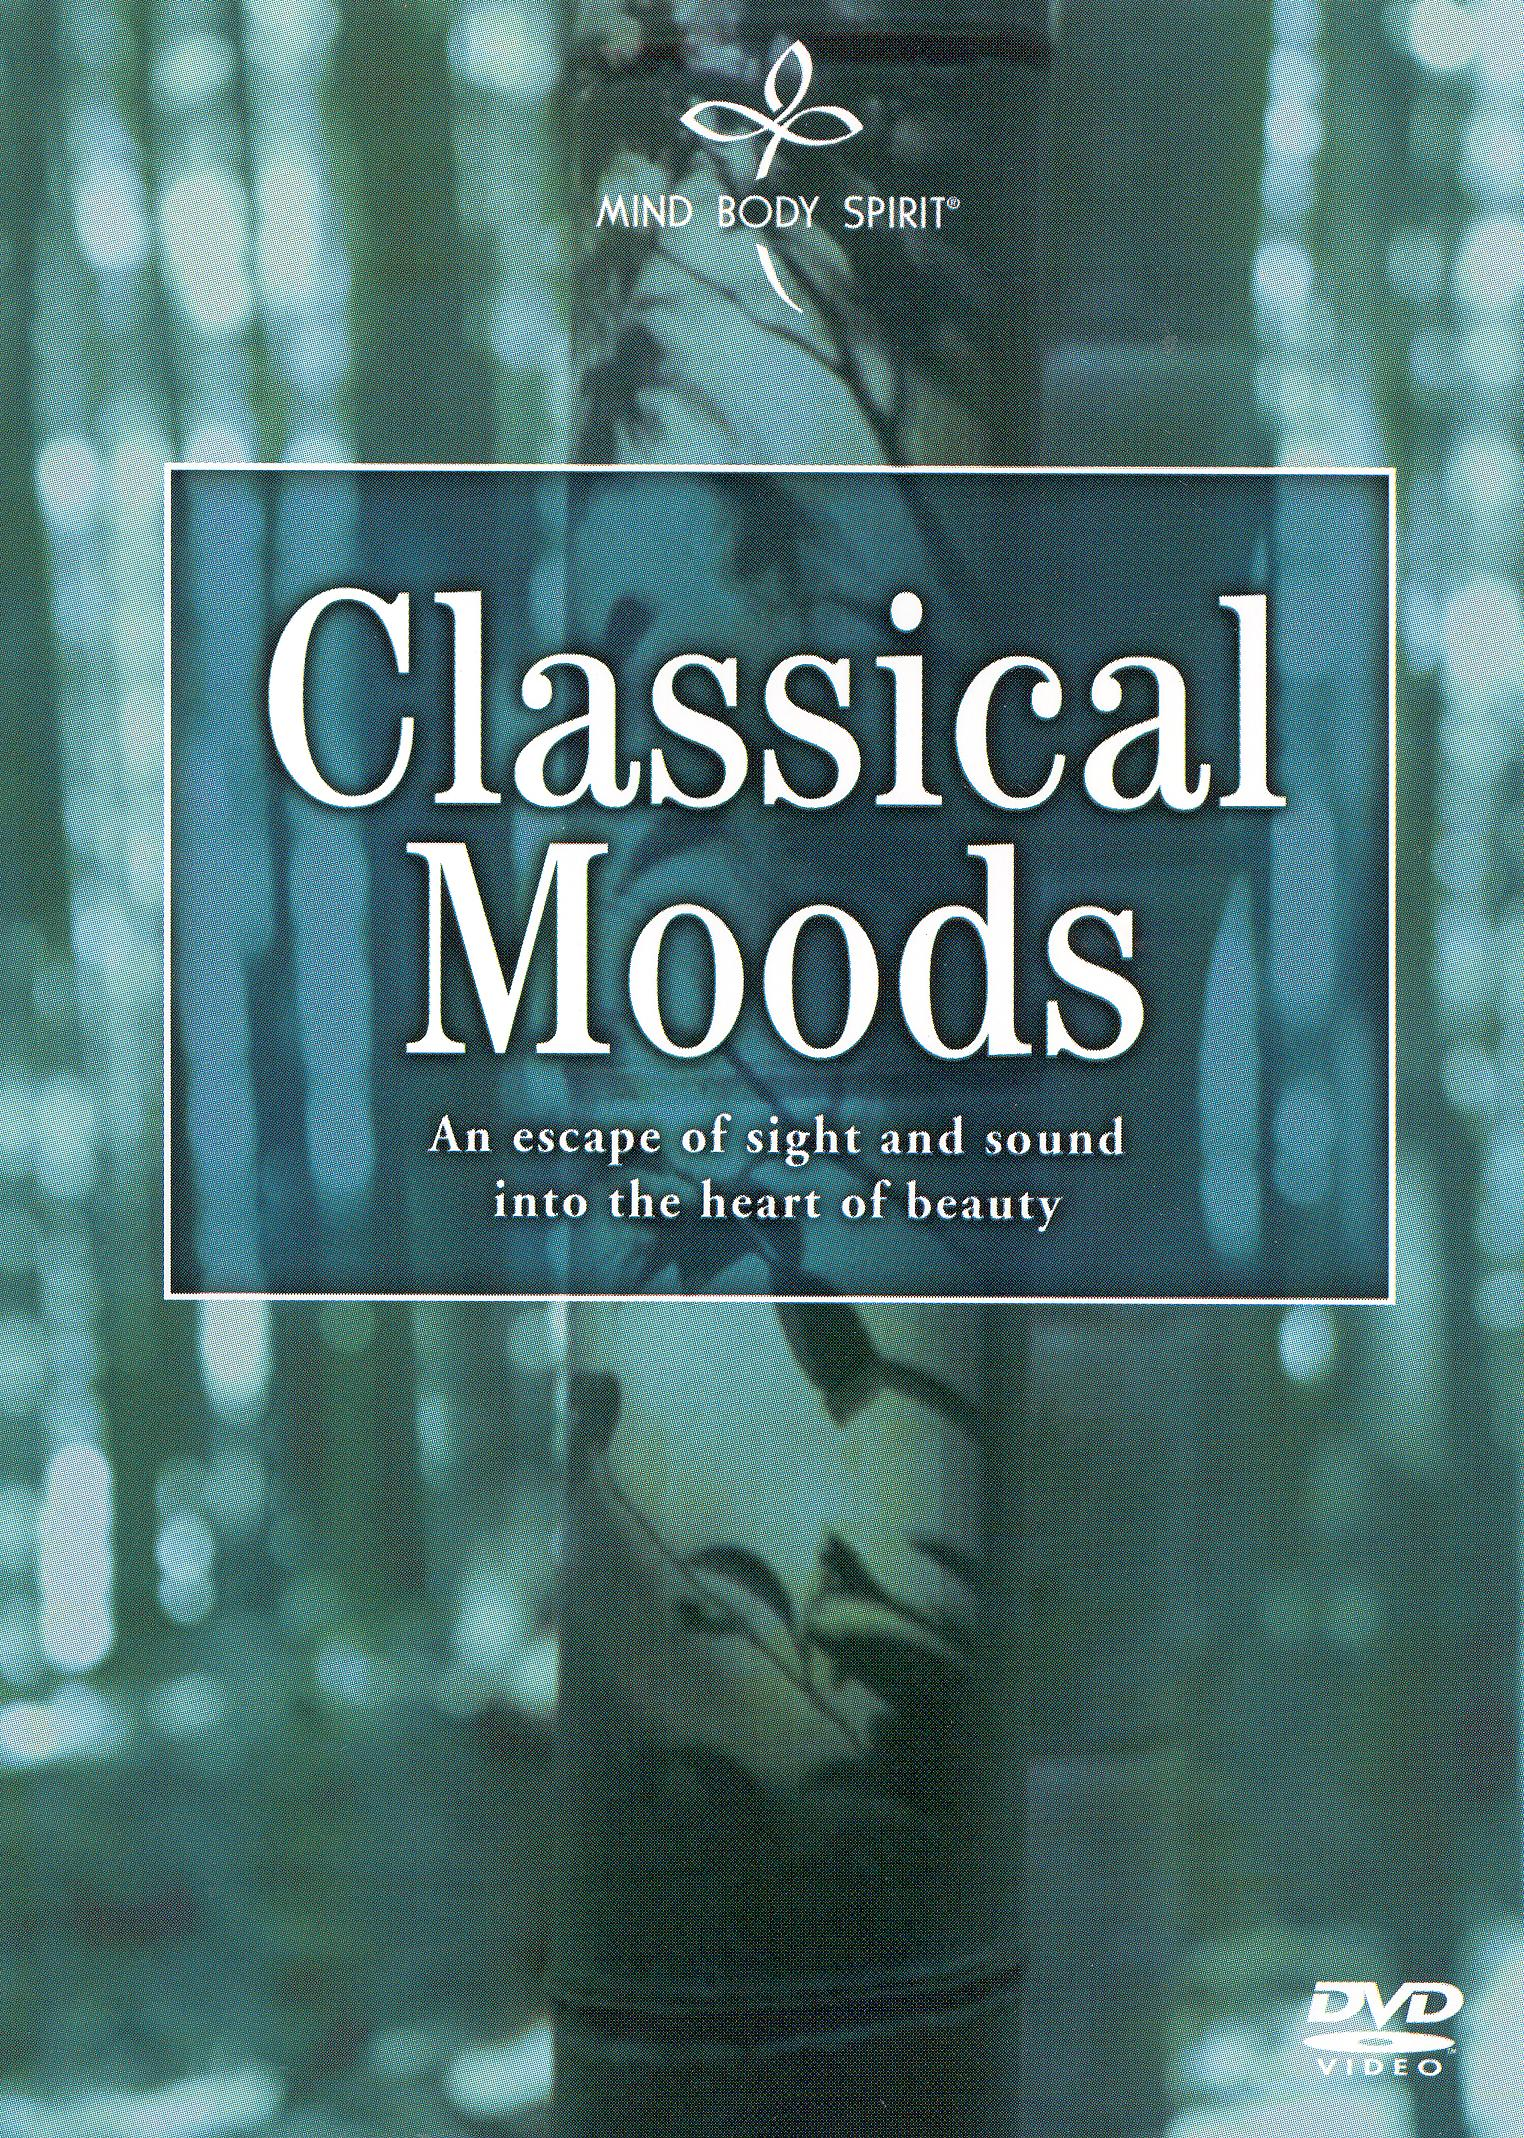 Mind Body Spirit: Classical Moods